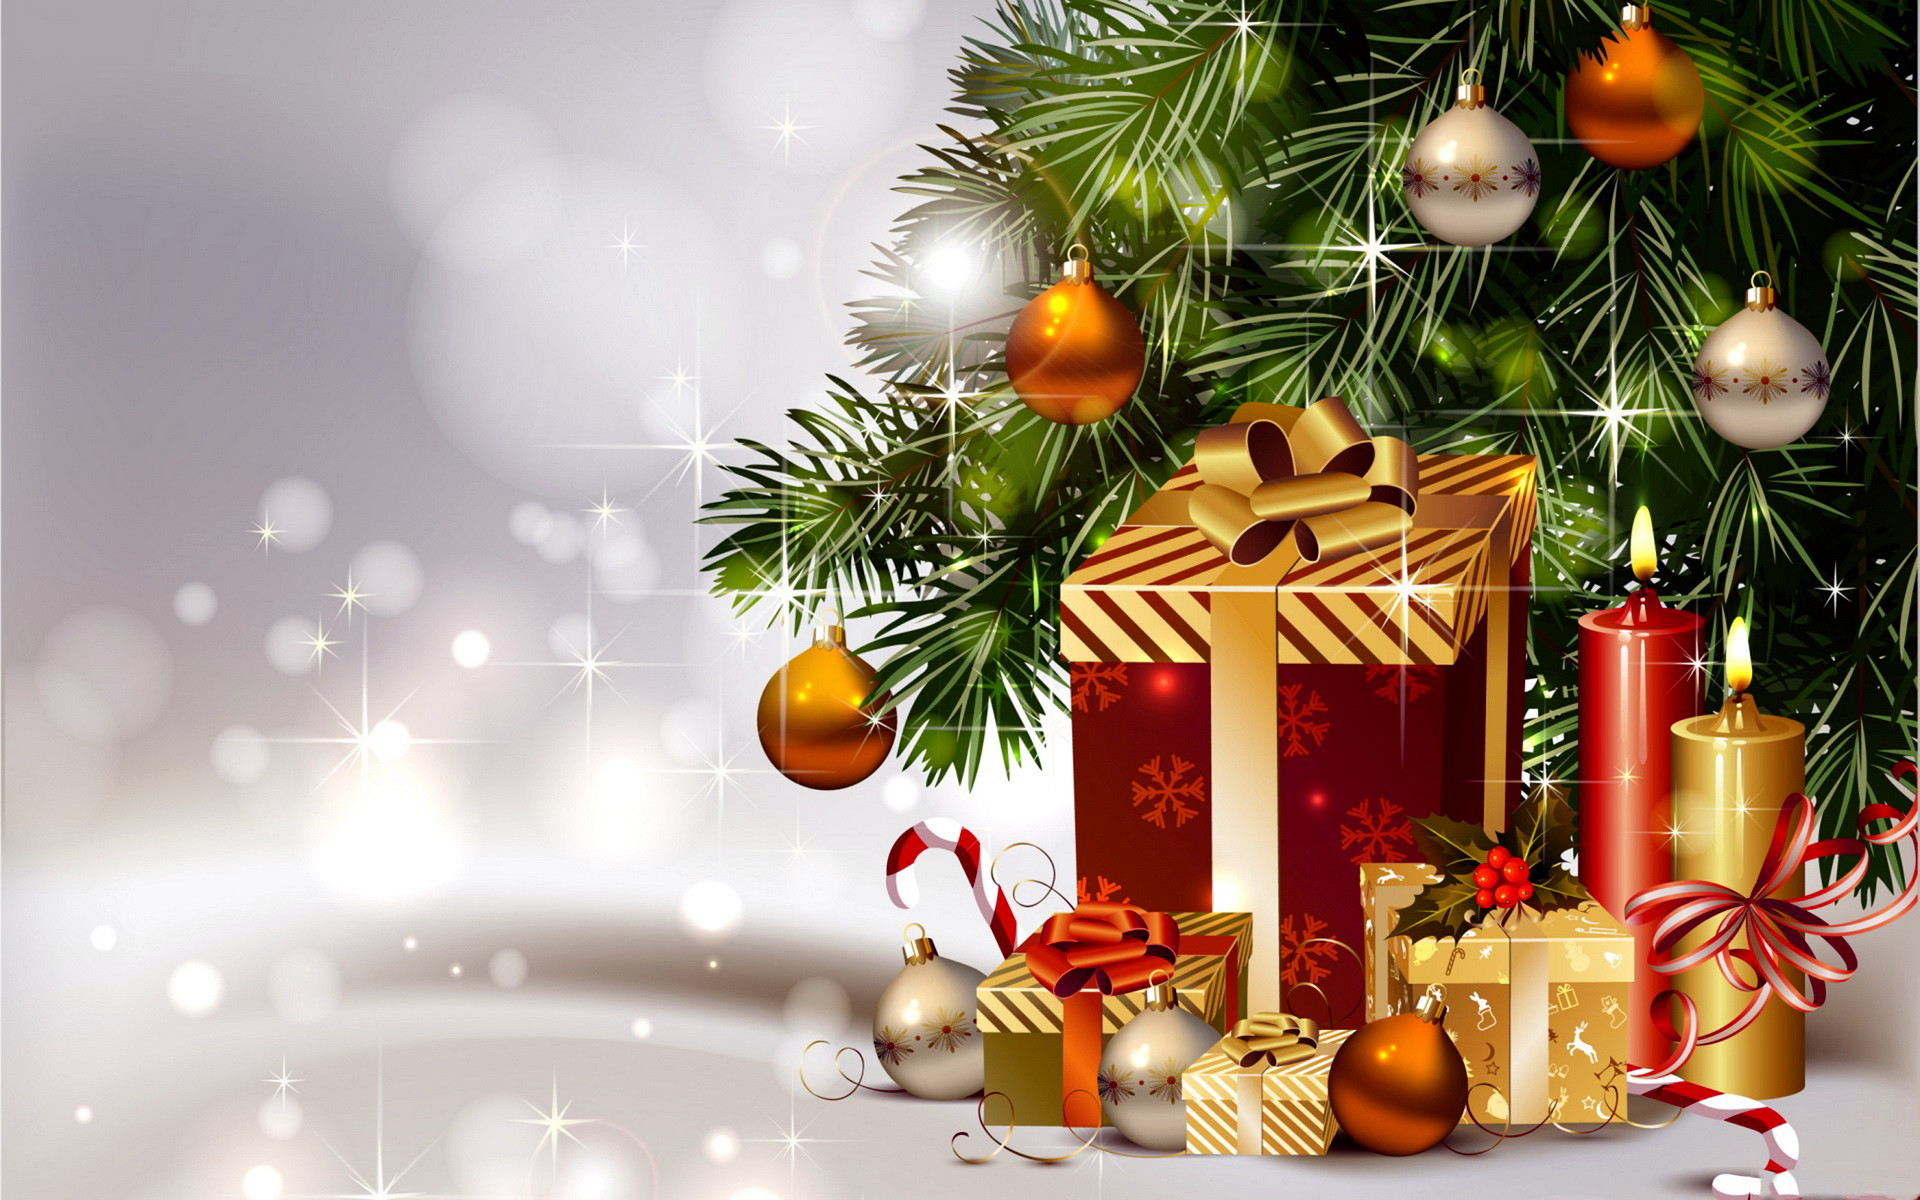 Lovely Free Christmas Wallpaper Downloads For Mac Best Christmas Quotes 2018 Greetings Funny Inspirational Holiday Sayings